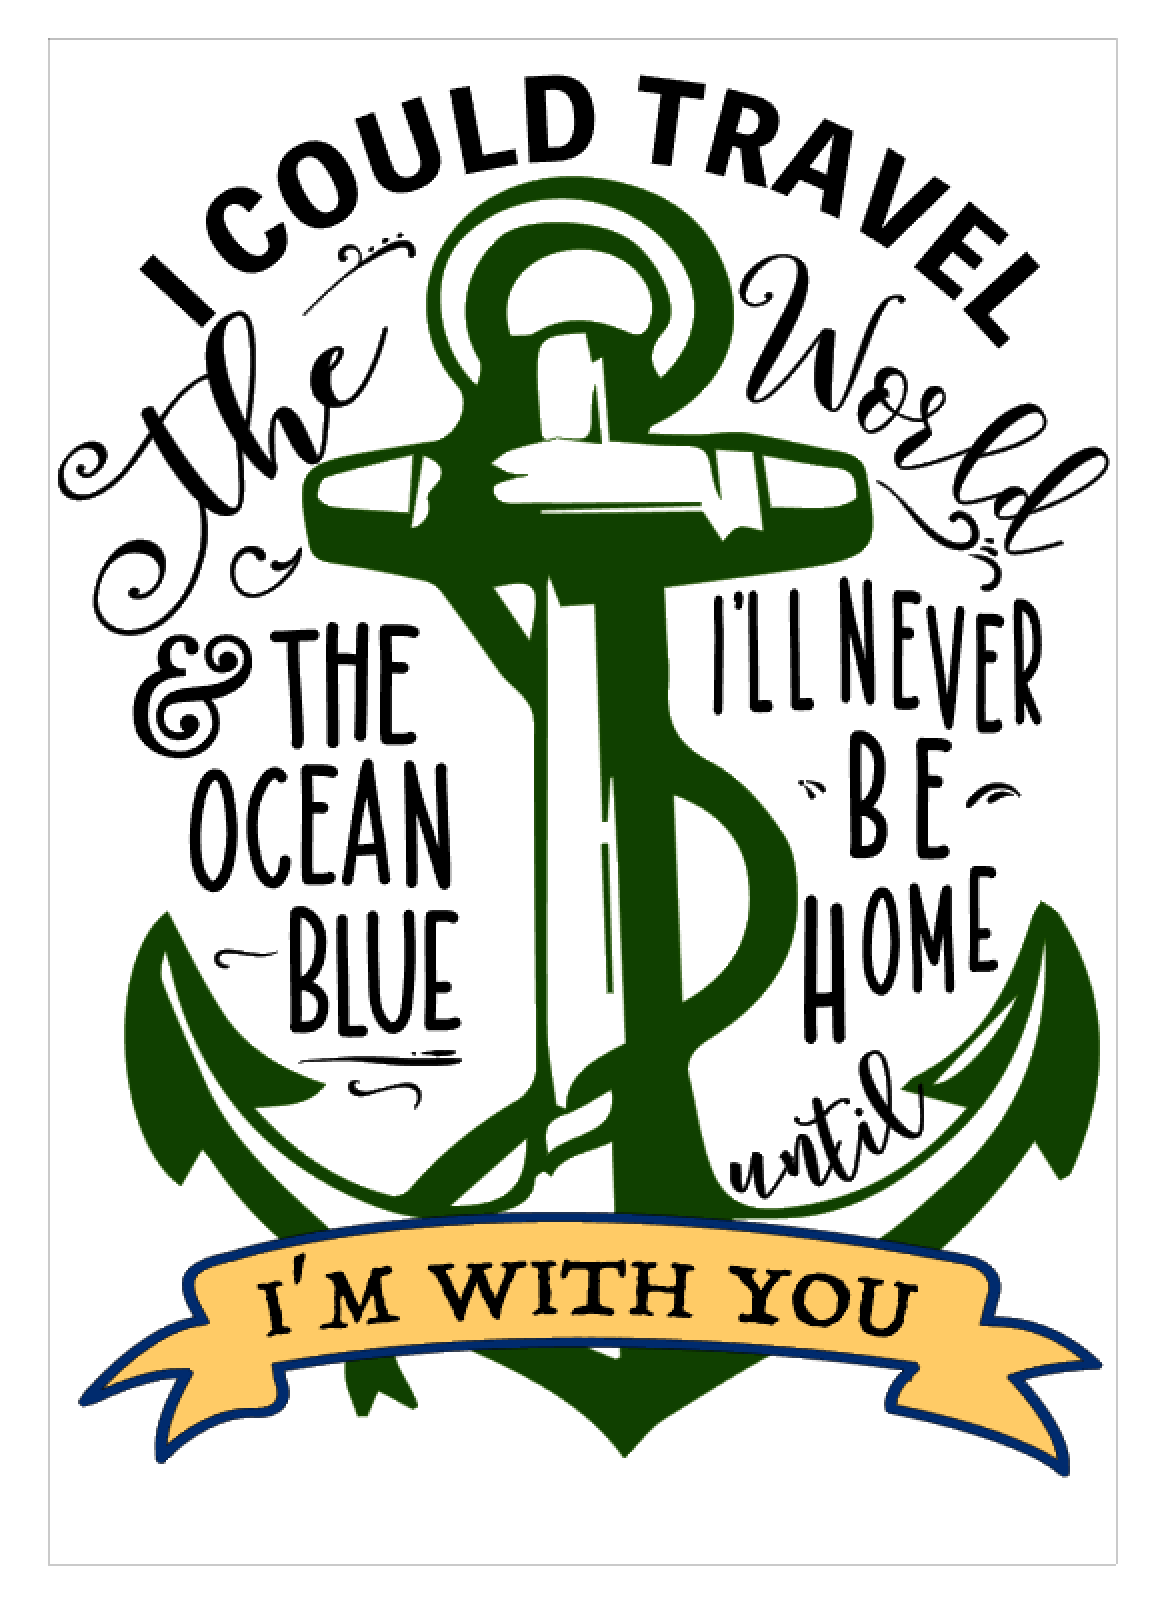 I COULD TRAVEL (ANCHOR)